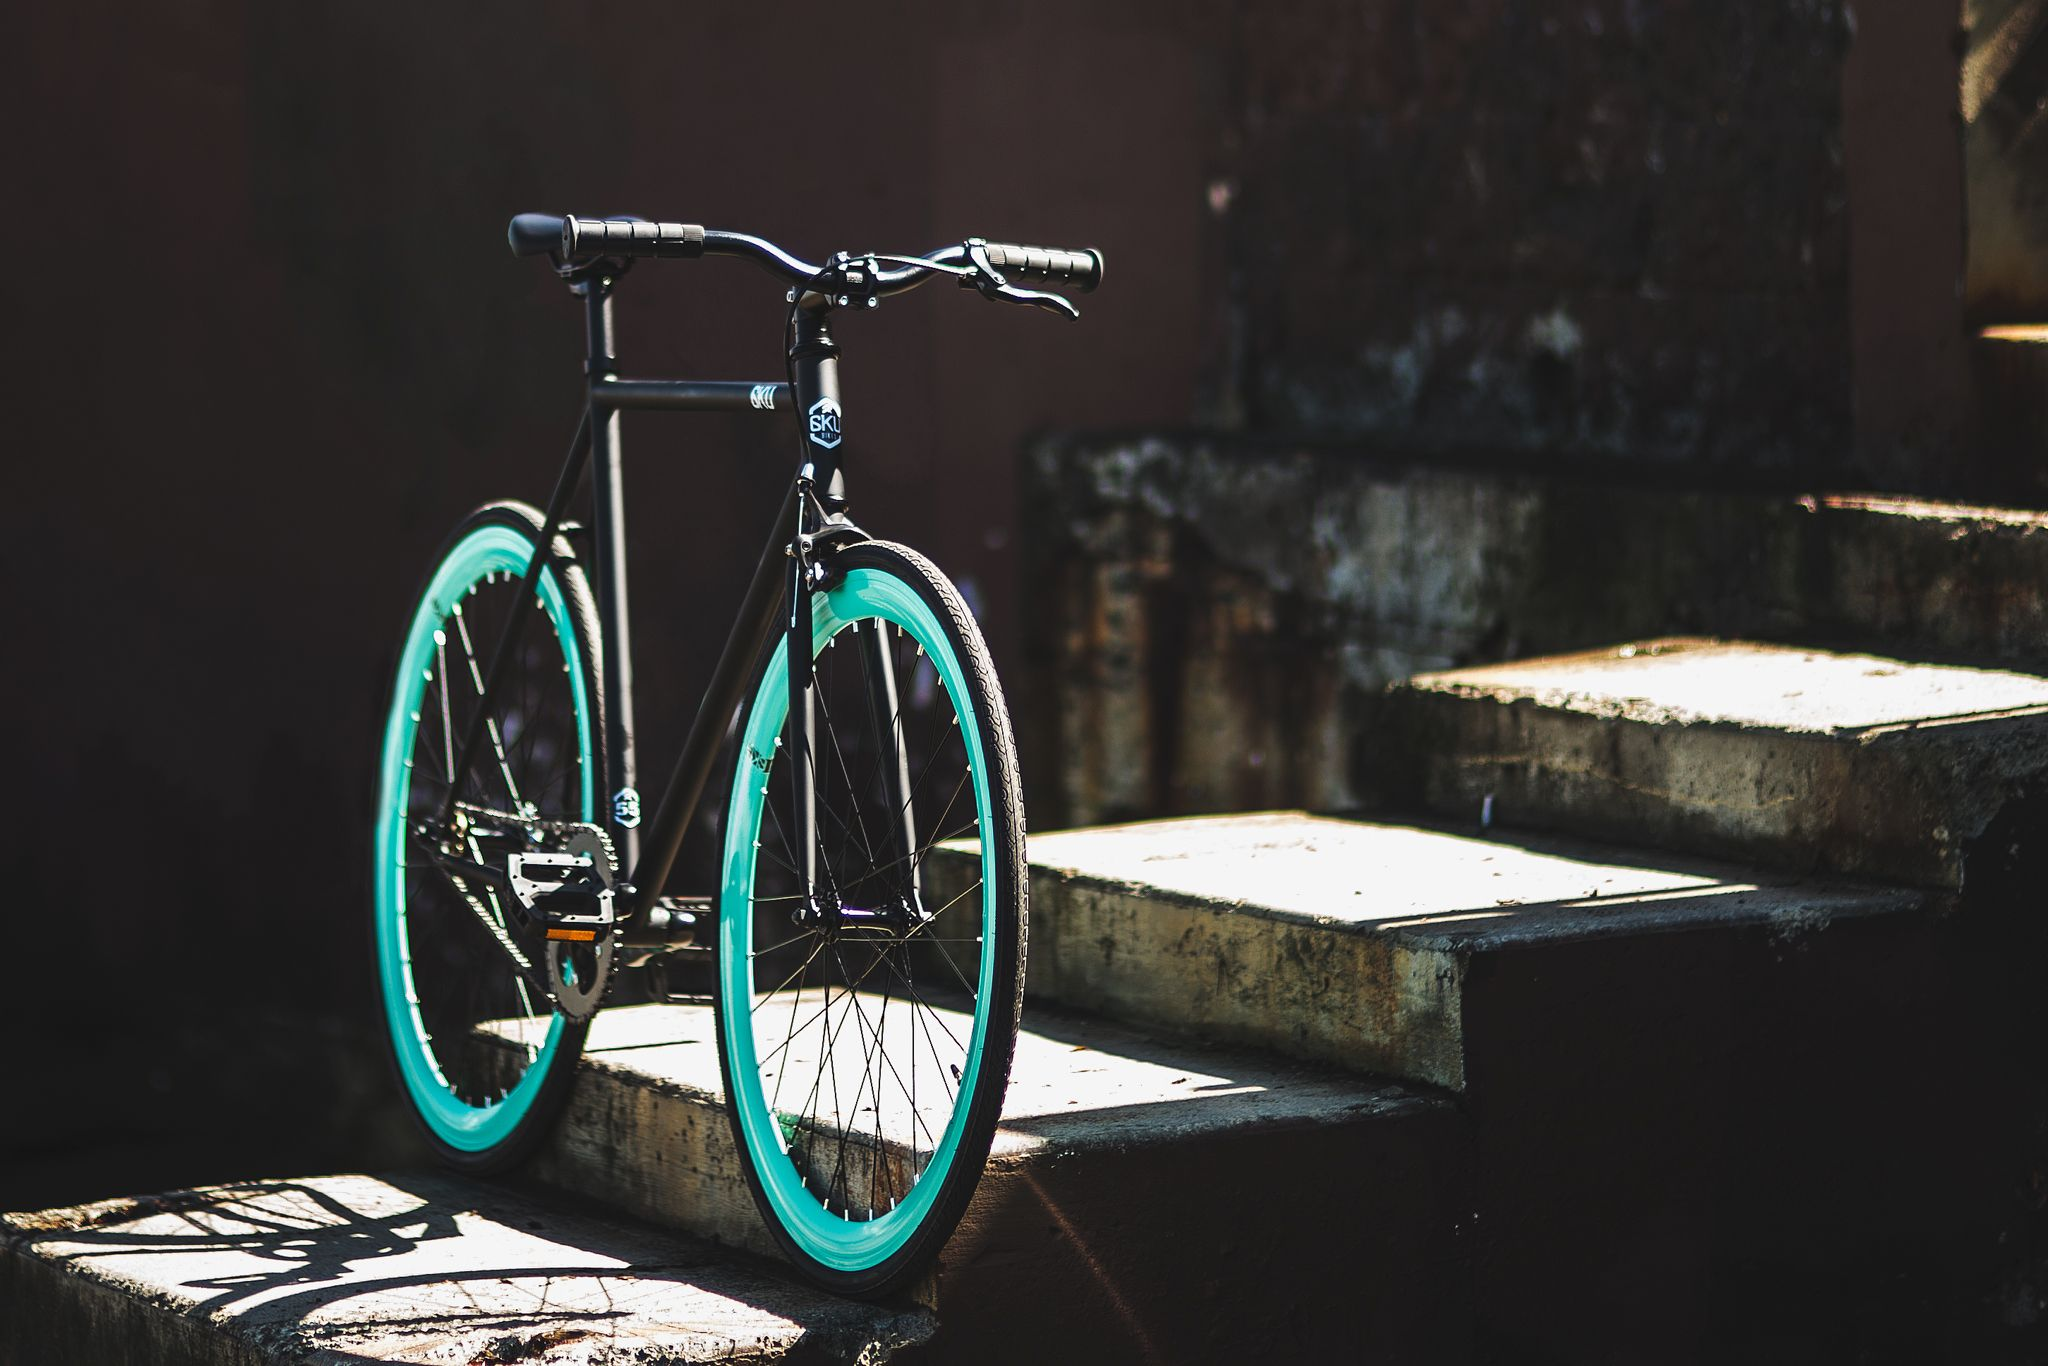 6ku Fixie - Beach Bum | 6ku Fixie | Pinterest | Fixie, Urban cycling ...